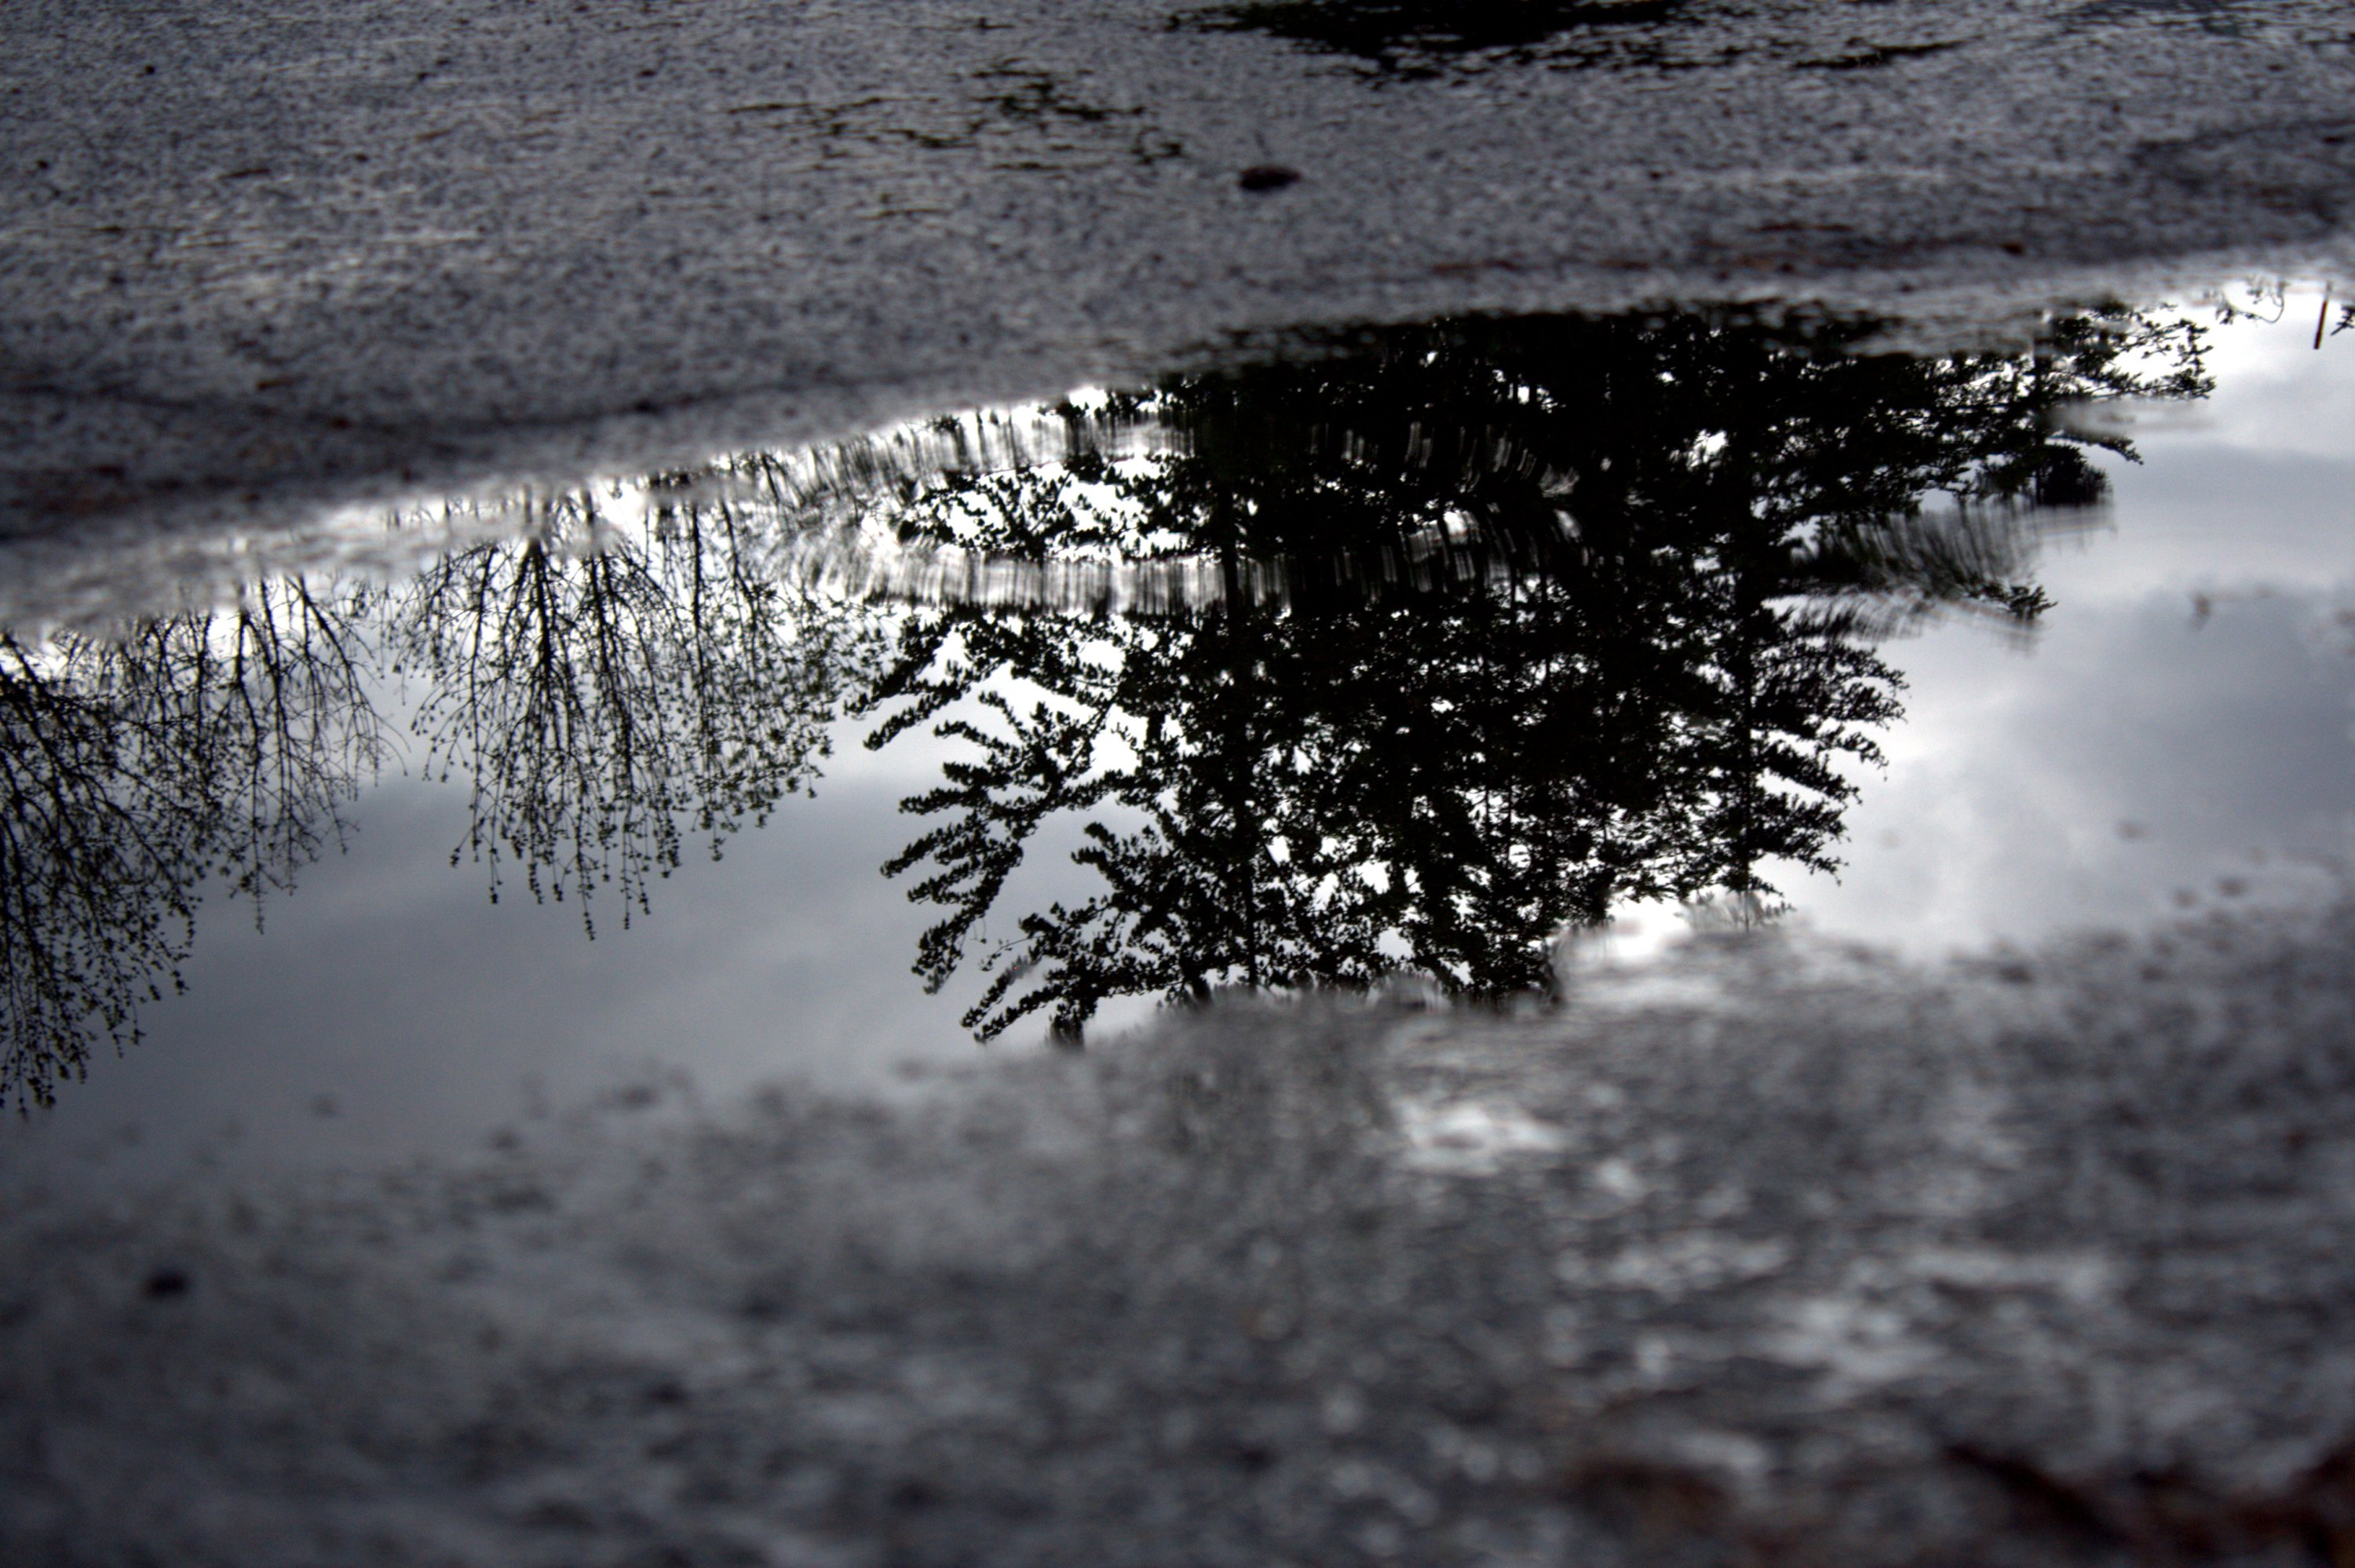 trees in the puddle